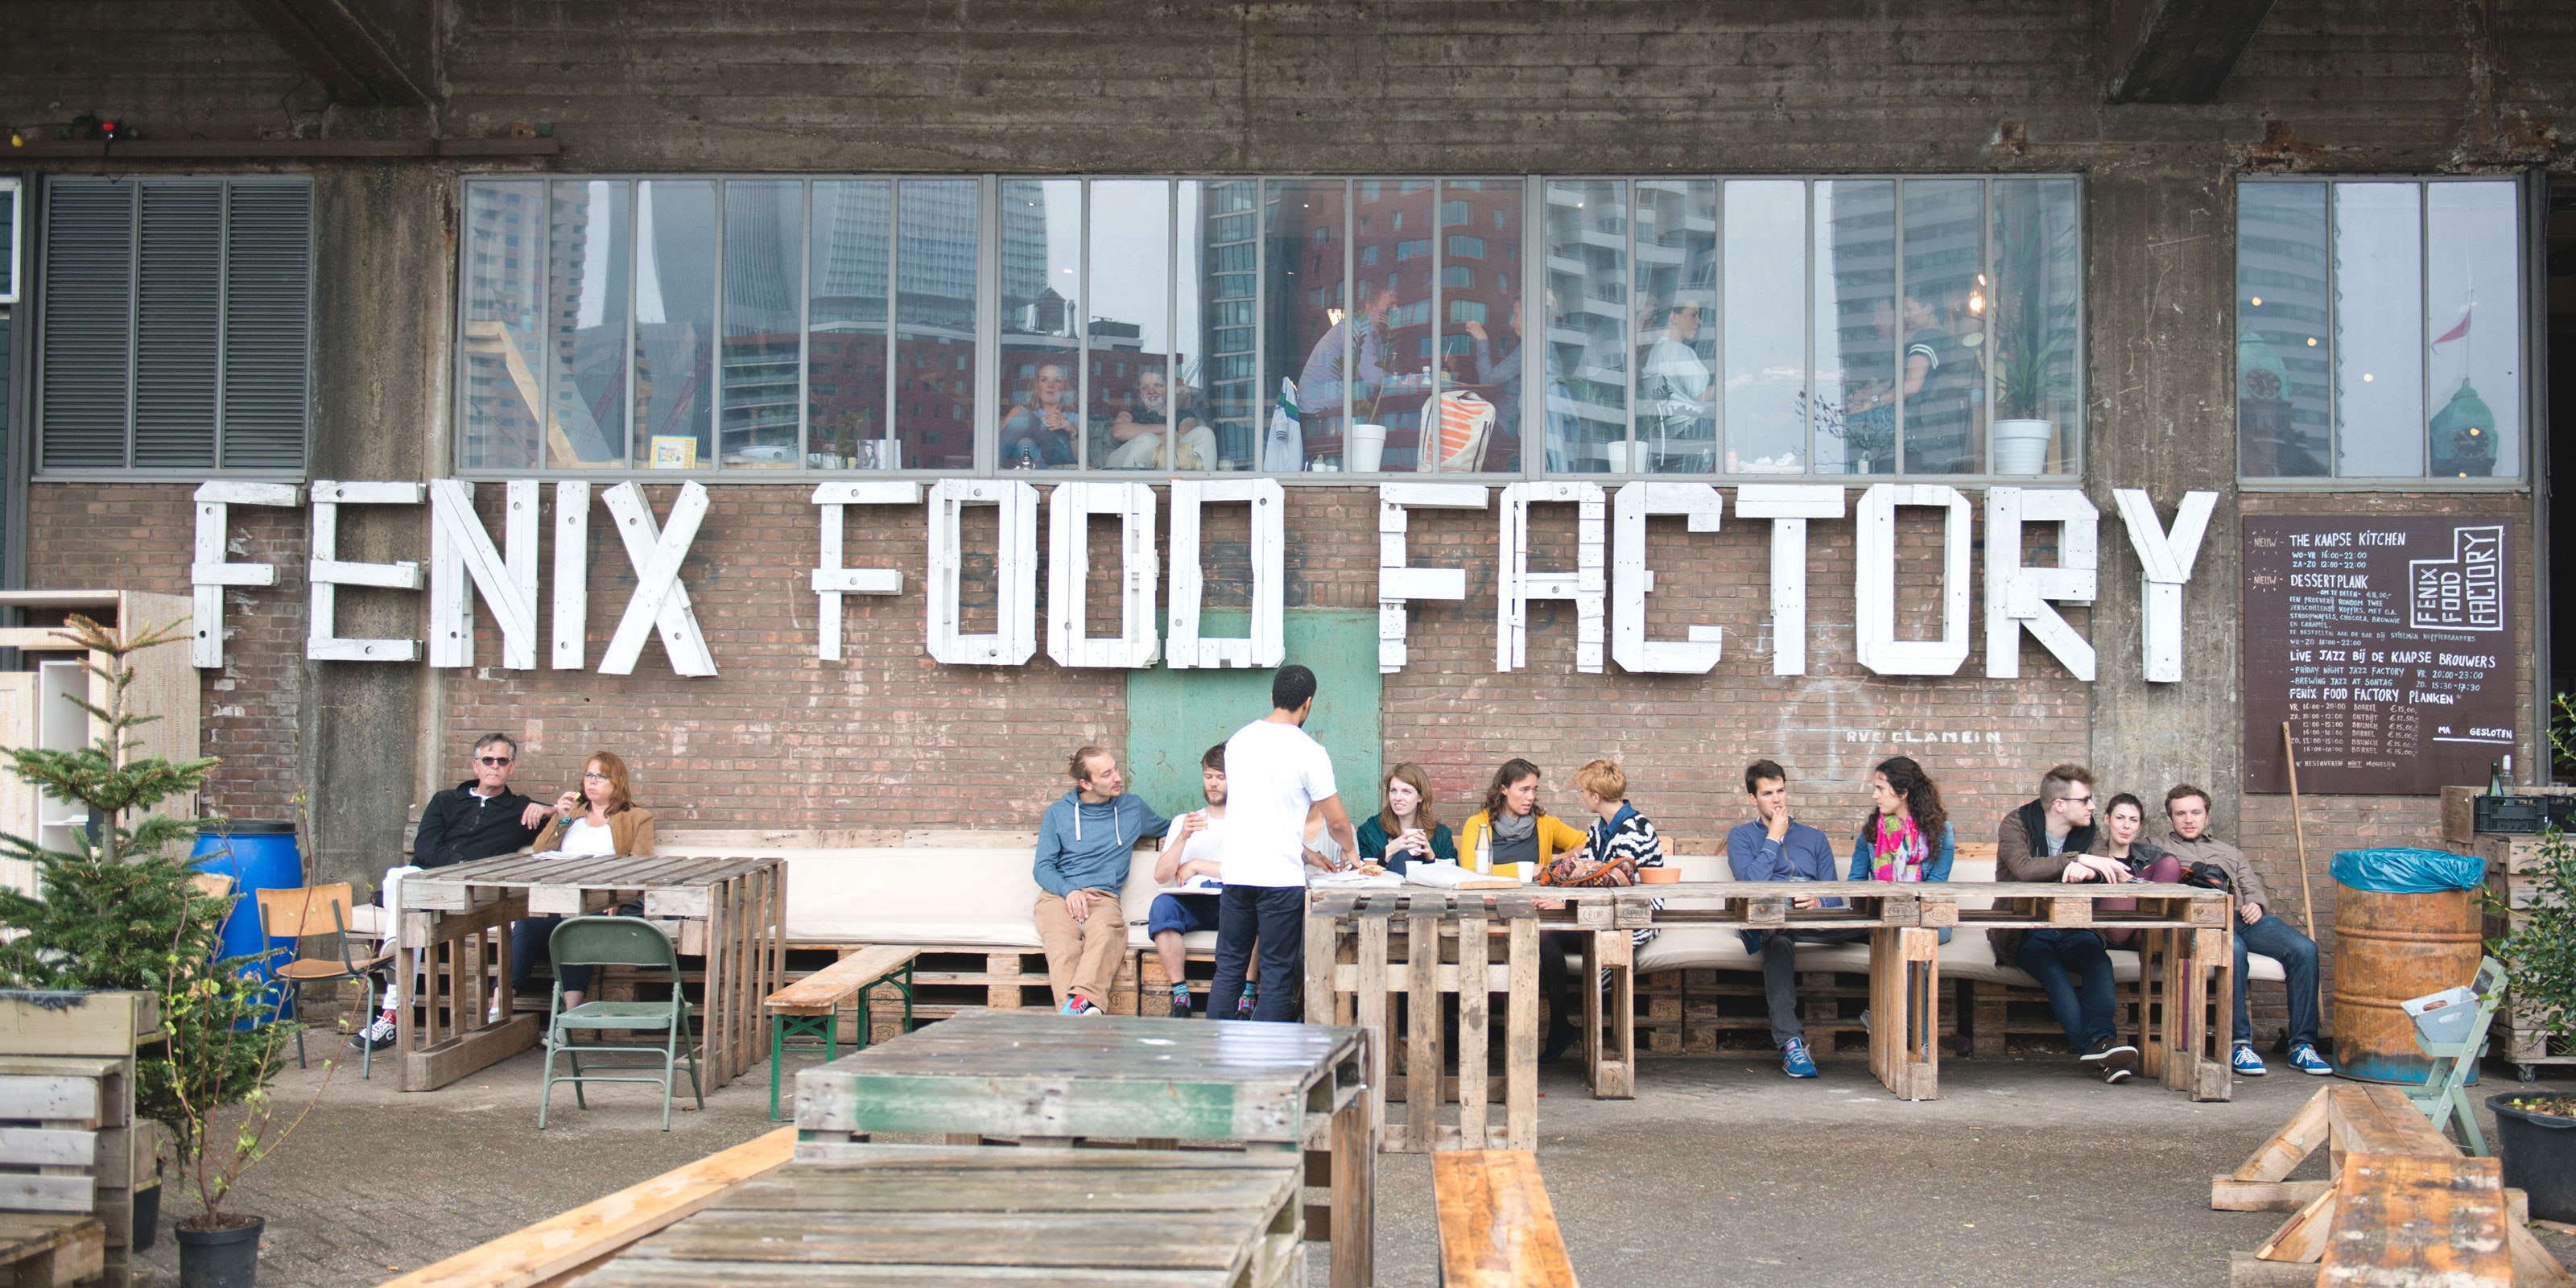 hotspots in rotterdam, fenix food factory